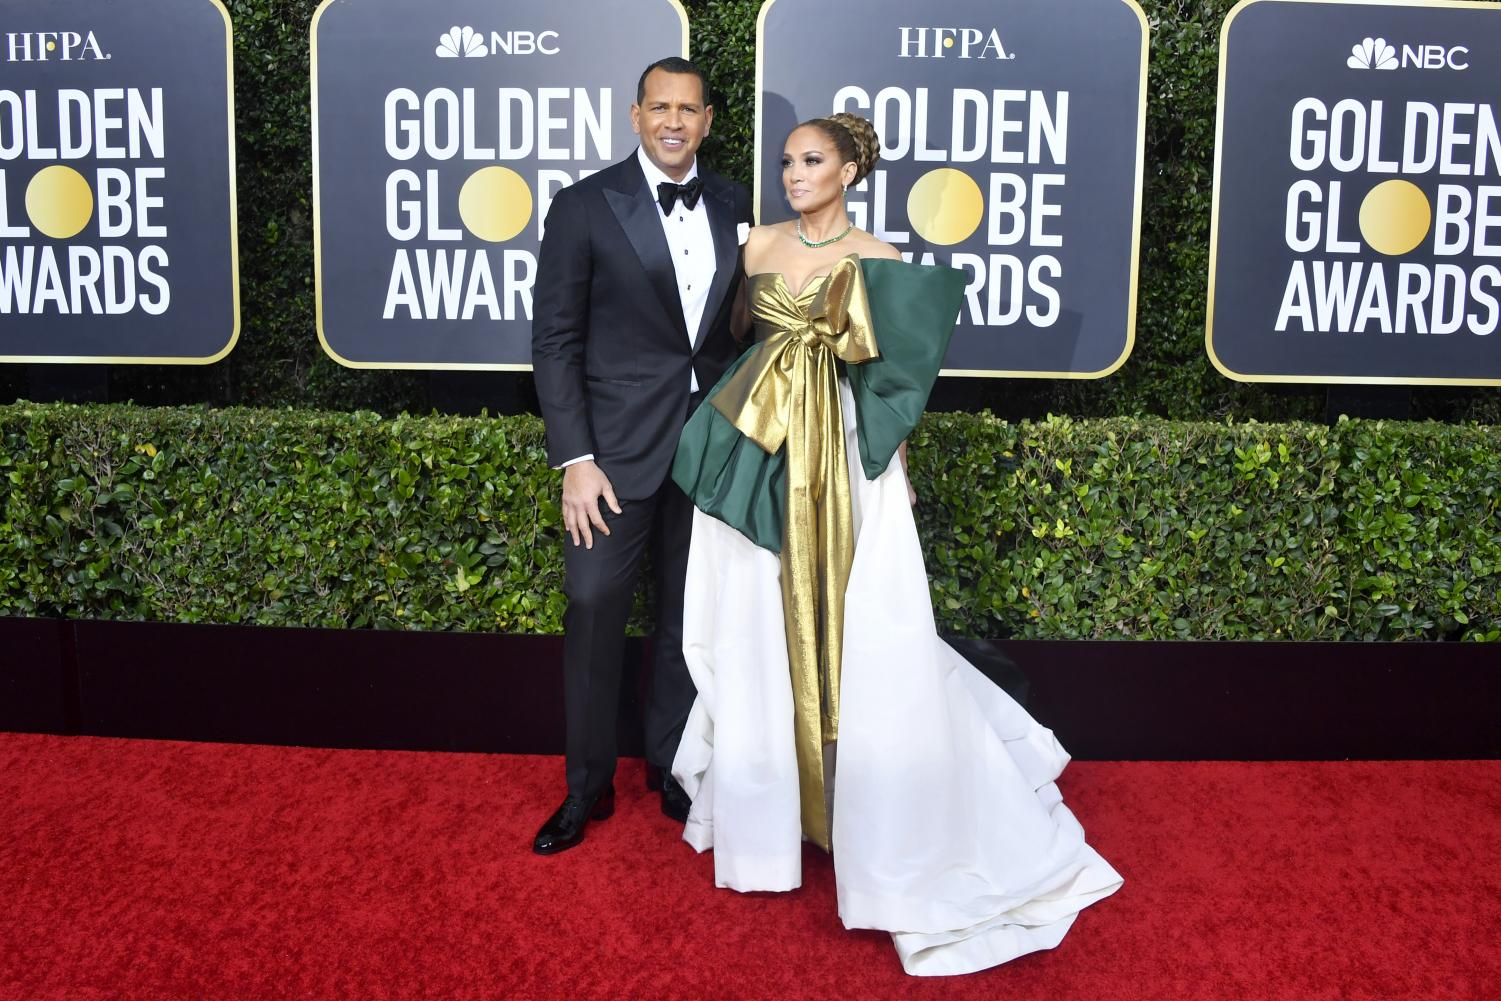 Jennifer Lopez and A-Rod at the Golden Globes Photo: Forbes